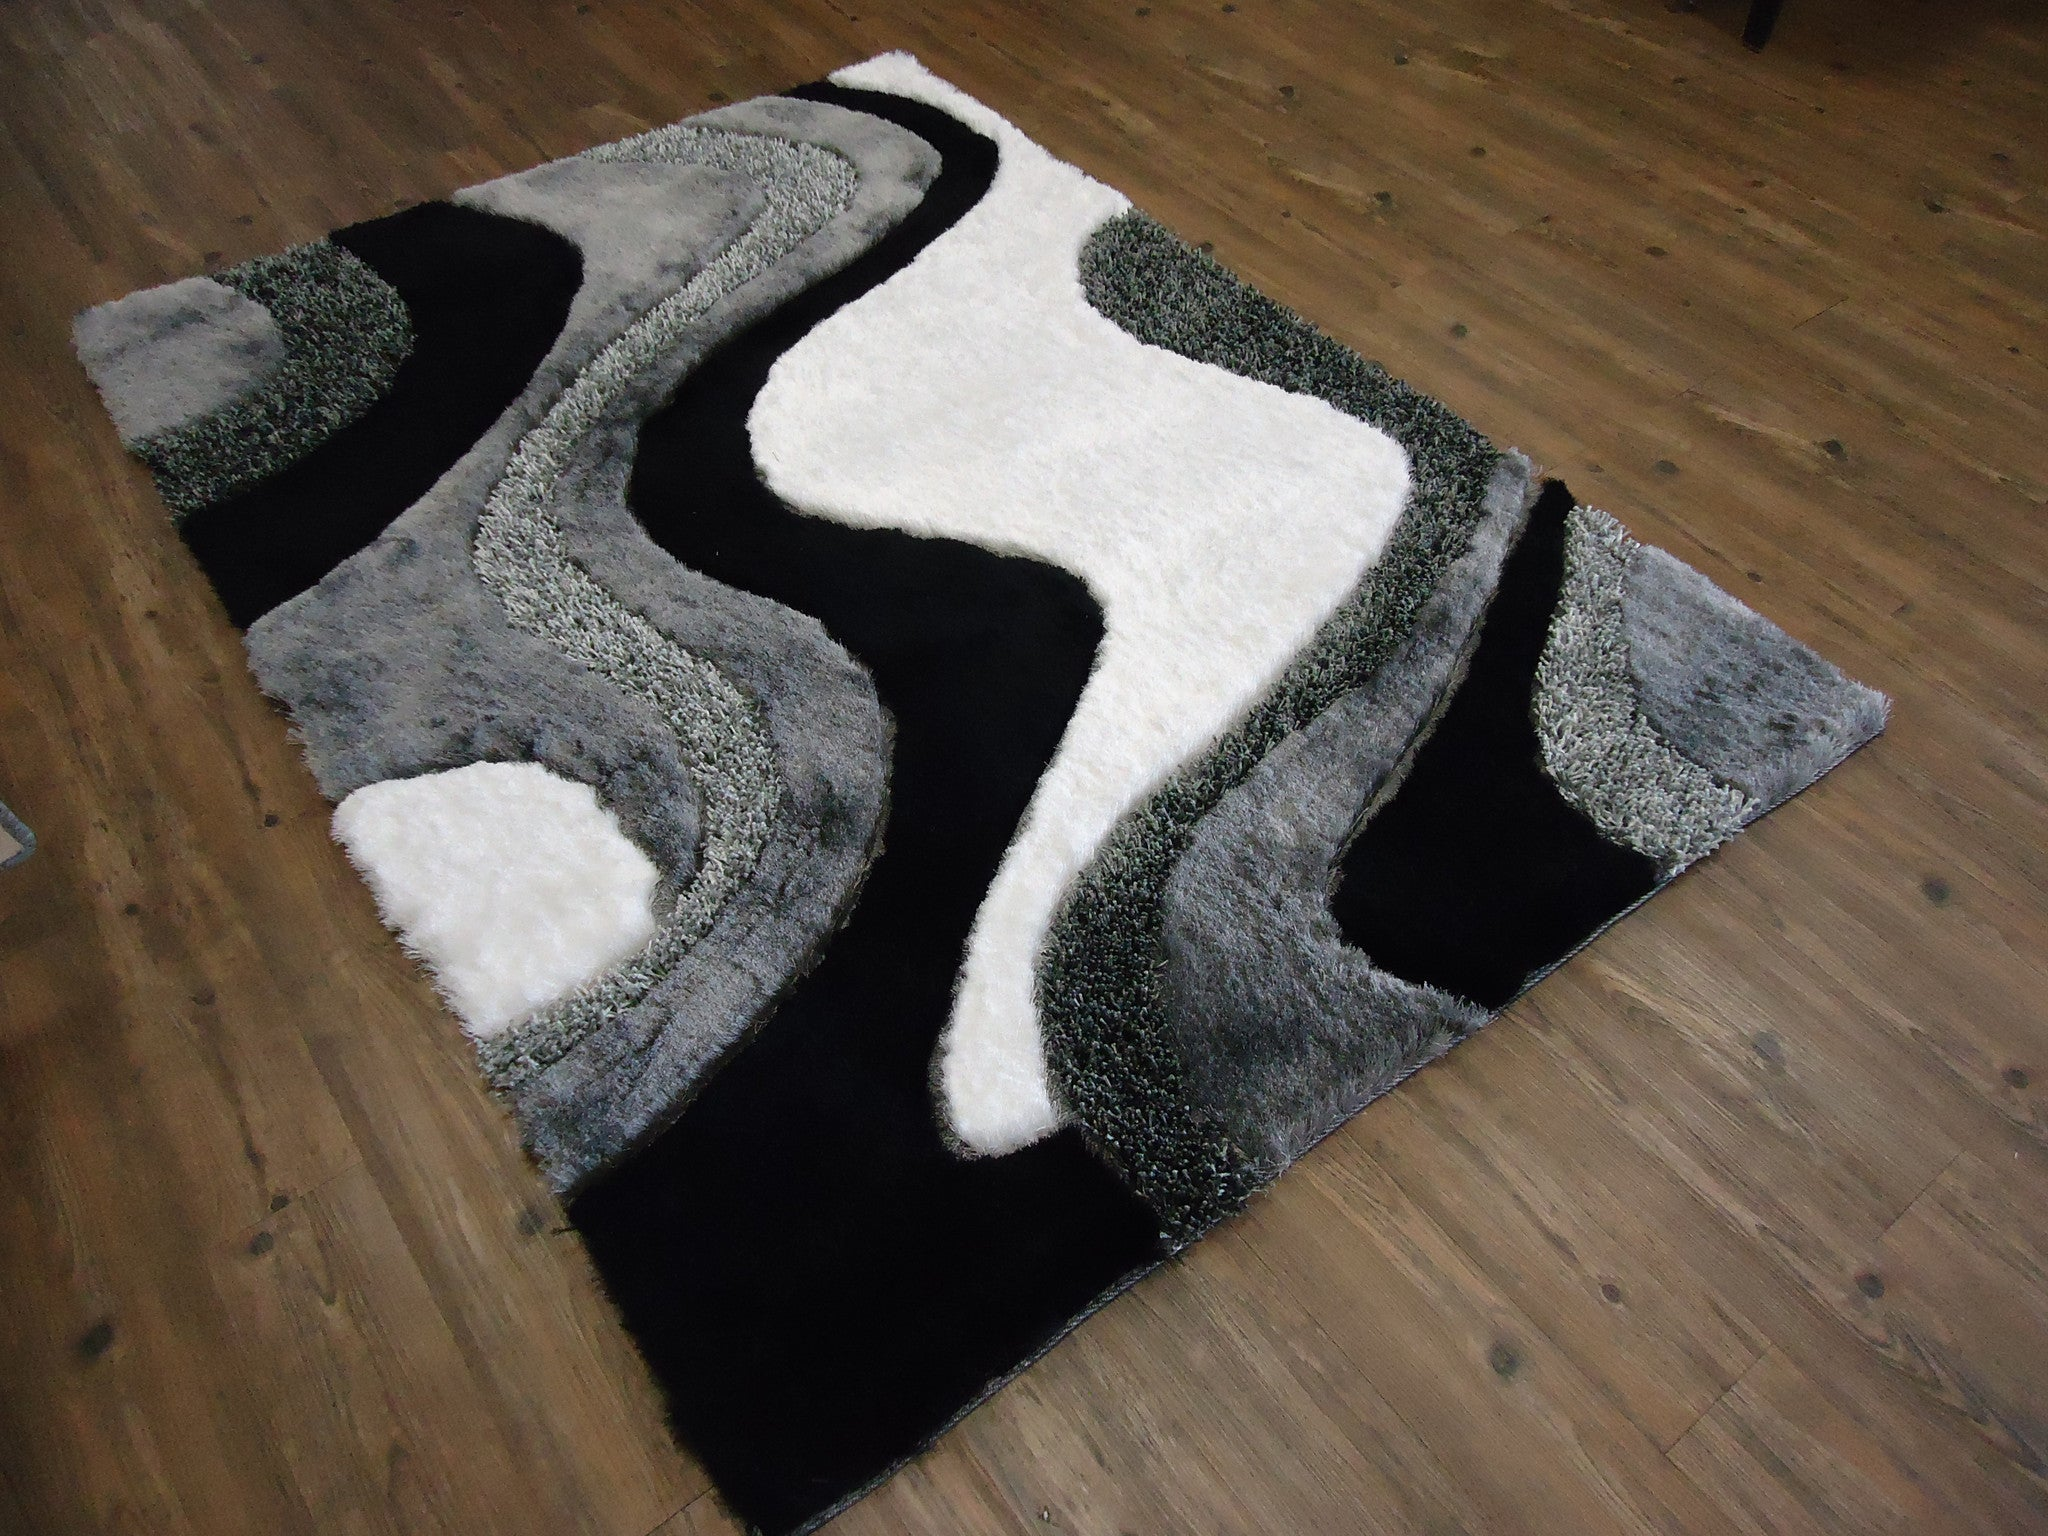 grey with black shag rug with hand carving design 4 x 54 black shag rug